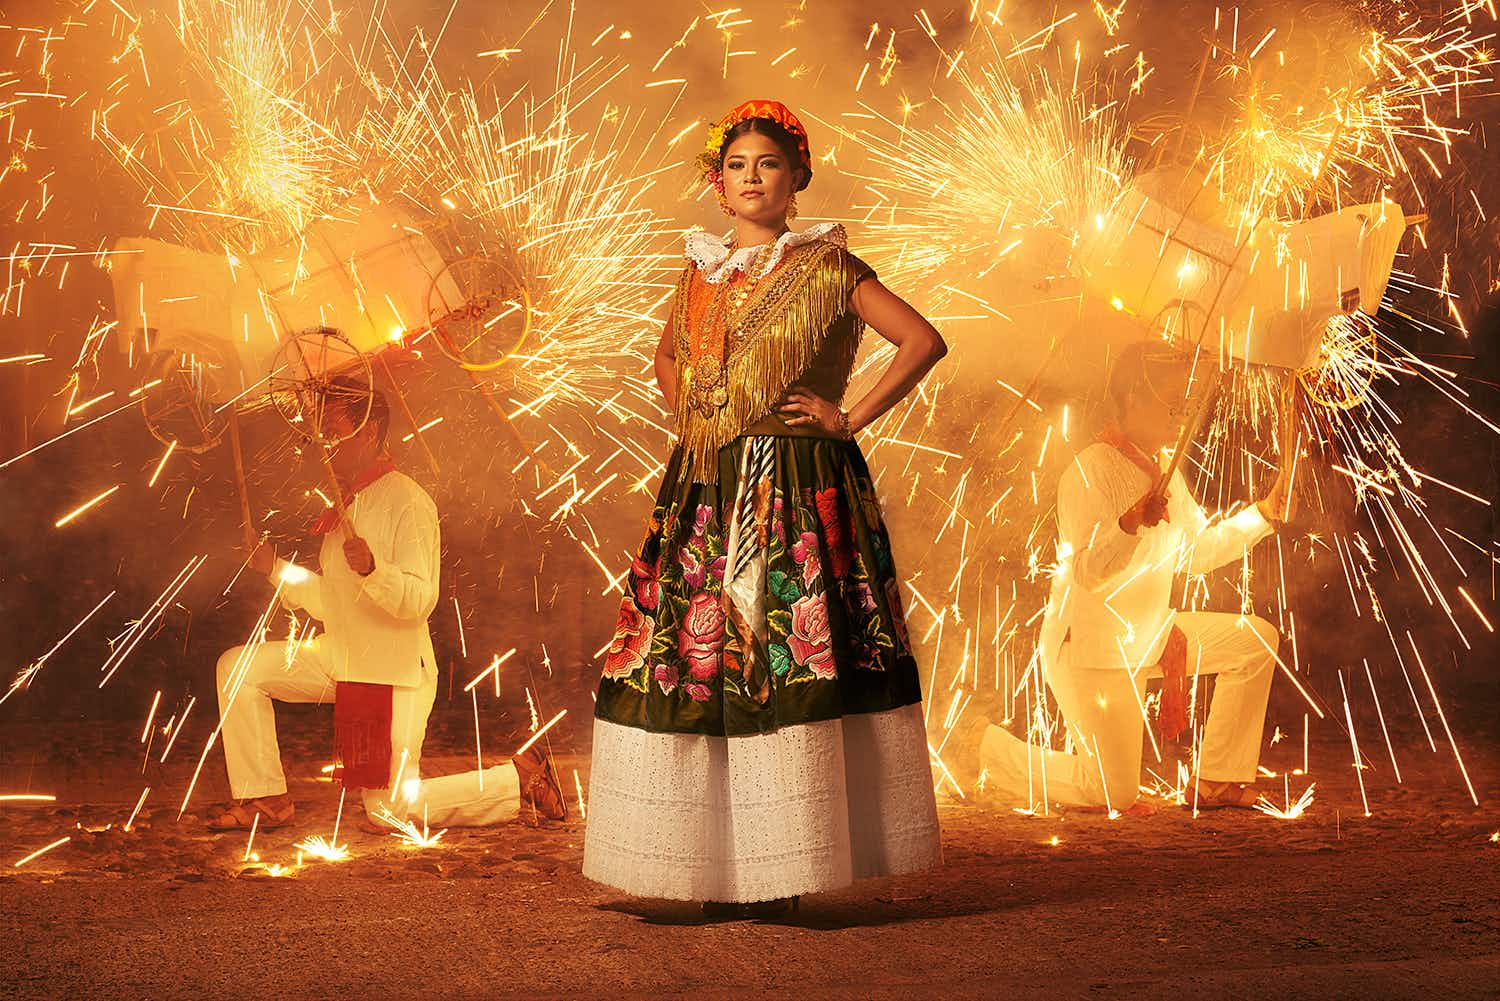 The indigenous people of Oaxaca, Mexico documented in stunning detail